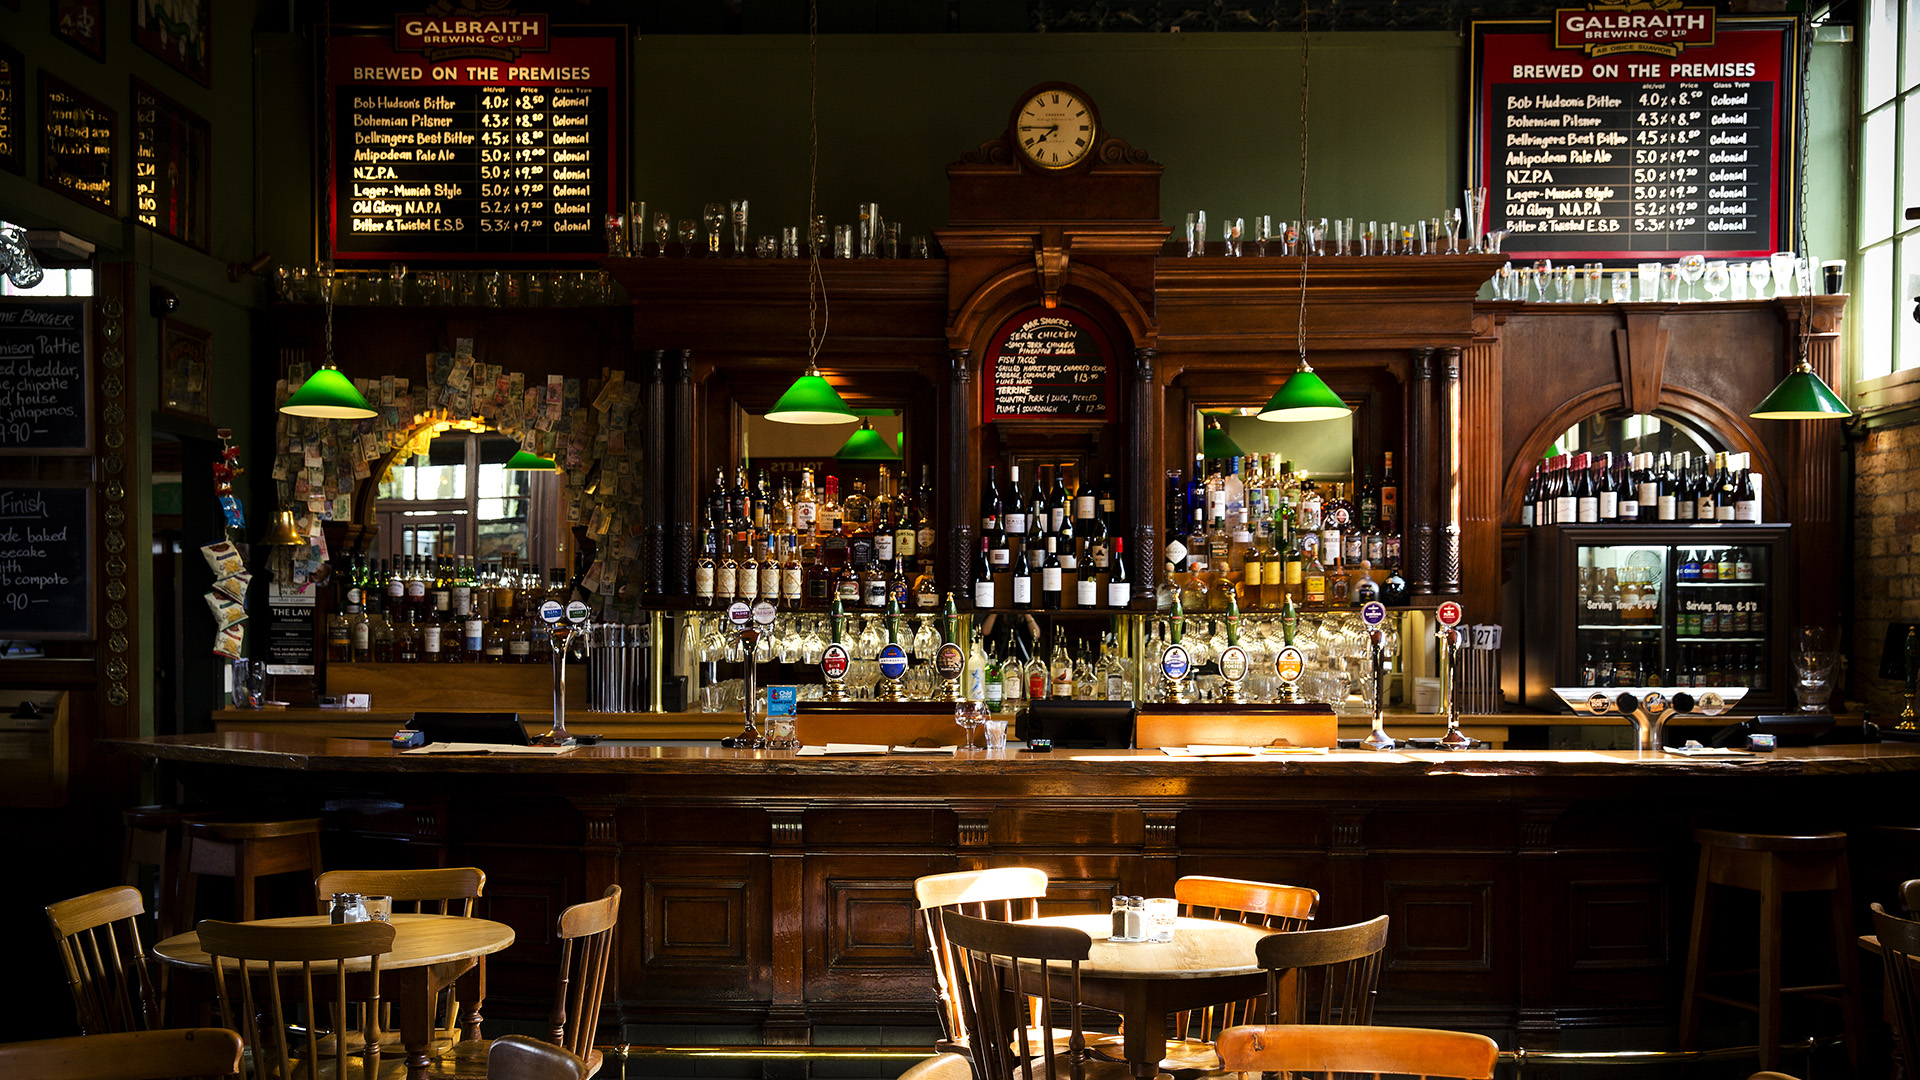 Galbraith's Alehouse. Virtual background to use on Zoom, Microsoft Teams, Skype, Google Meet, WebEx or any other compatible app.